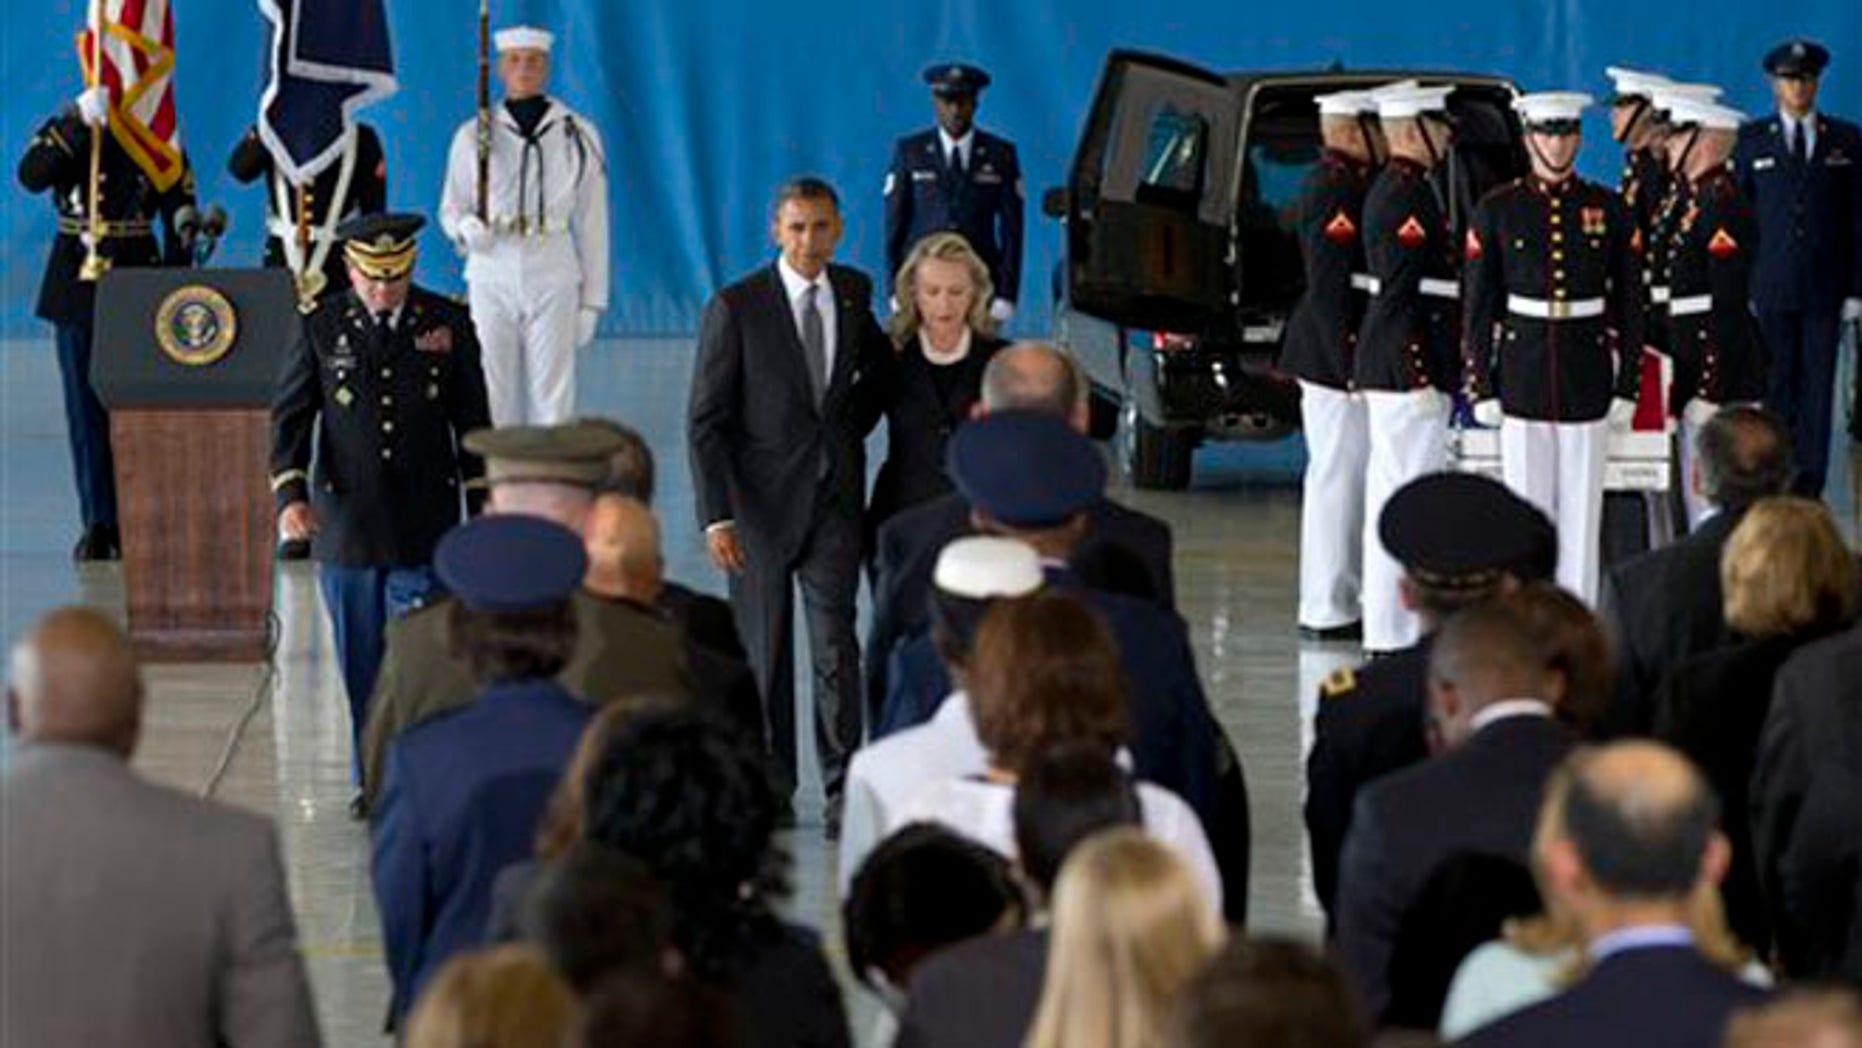 FILE: Sept. 14, 2012: President Obama and Secretary of State Hillary Clinton walk back to their seats after speaking during the Transfer of Remains Ceremony at Andrews Air Force Base, Md.